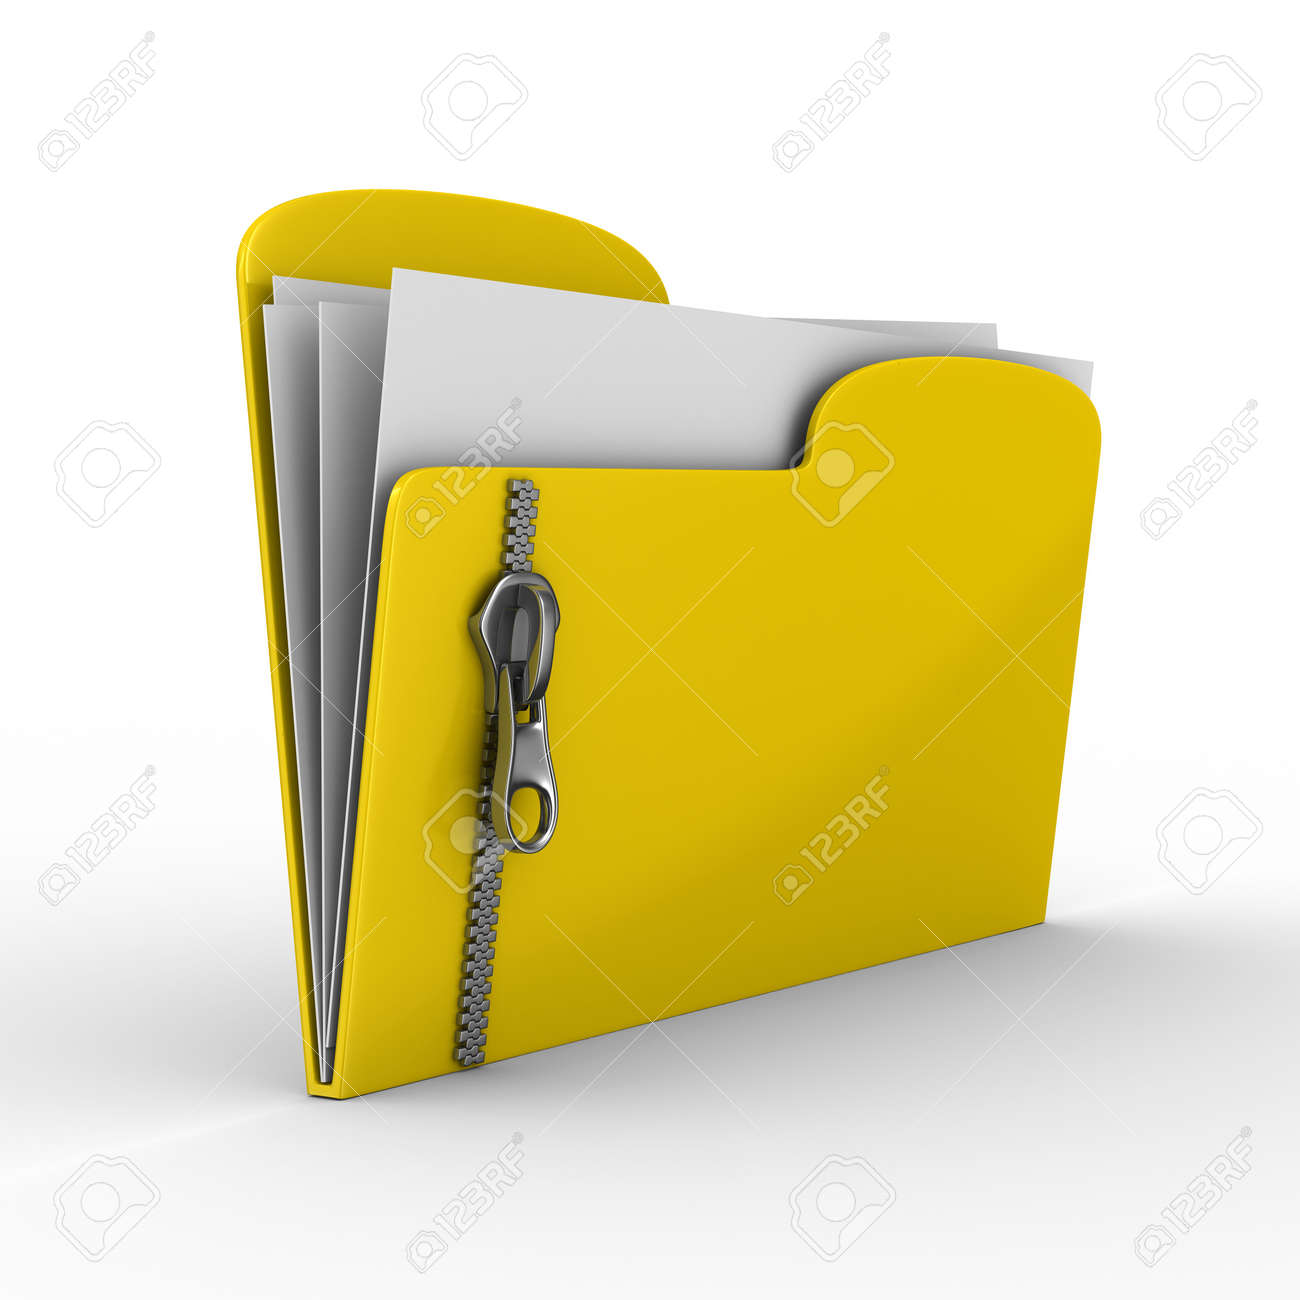 Yellow computer folder with zipper. Isolated 3d image Stock Photo - 8110895